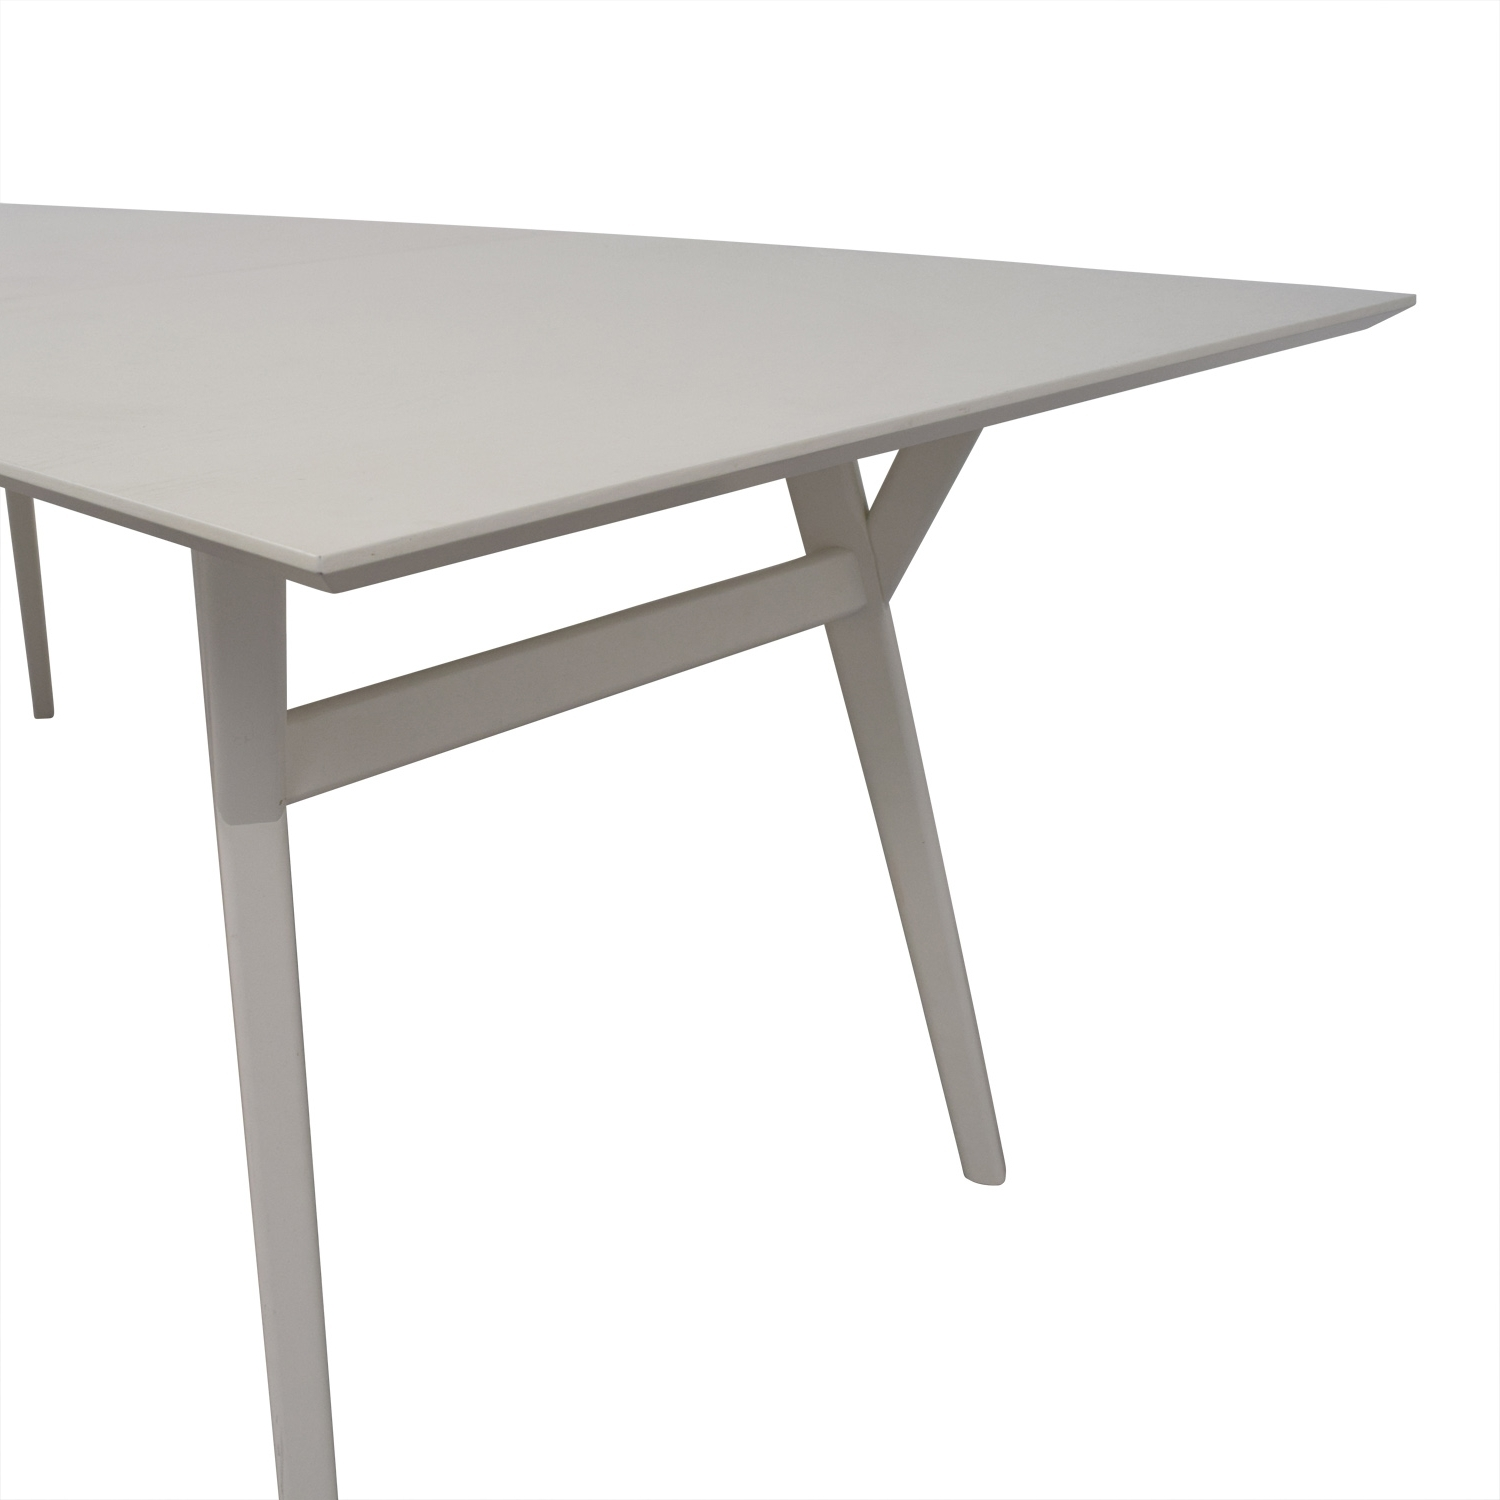 [%61% Off – West Elm West Elm Mid Century White Expandable Dining With Regard To Most Recent White Square Extending Dining Tables|White Square Extending Dining Tables Regarding Current 61% Off – West Elm West Elm Mid Century White Expandable Dining|Best And Newest White Square Extending Dining Tables Intended For 61% Off – West Elm West Elm Mid Century White Expandable Dining|Newest 61% Off – West Elm West Elm Mid Century White Expandable Dining Pertaining To White Square Extending Dining Tables%] (View 1 of 25)